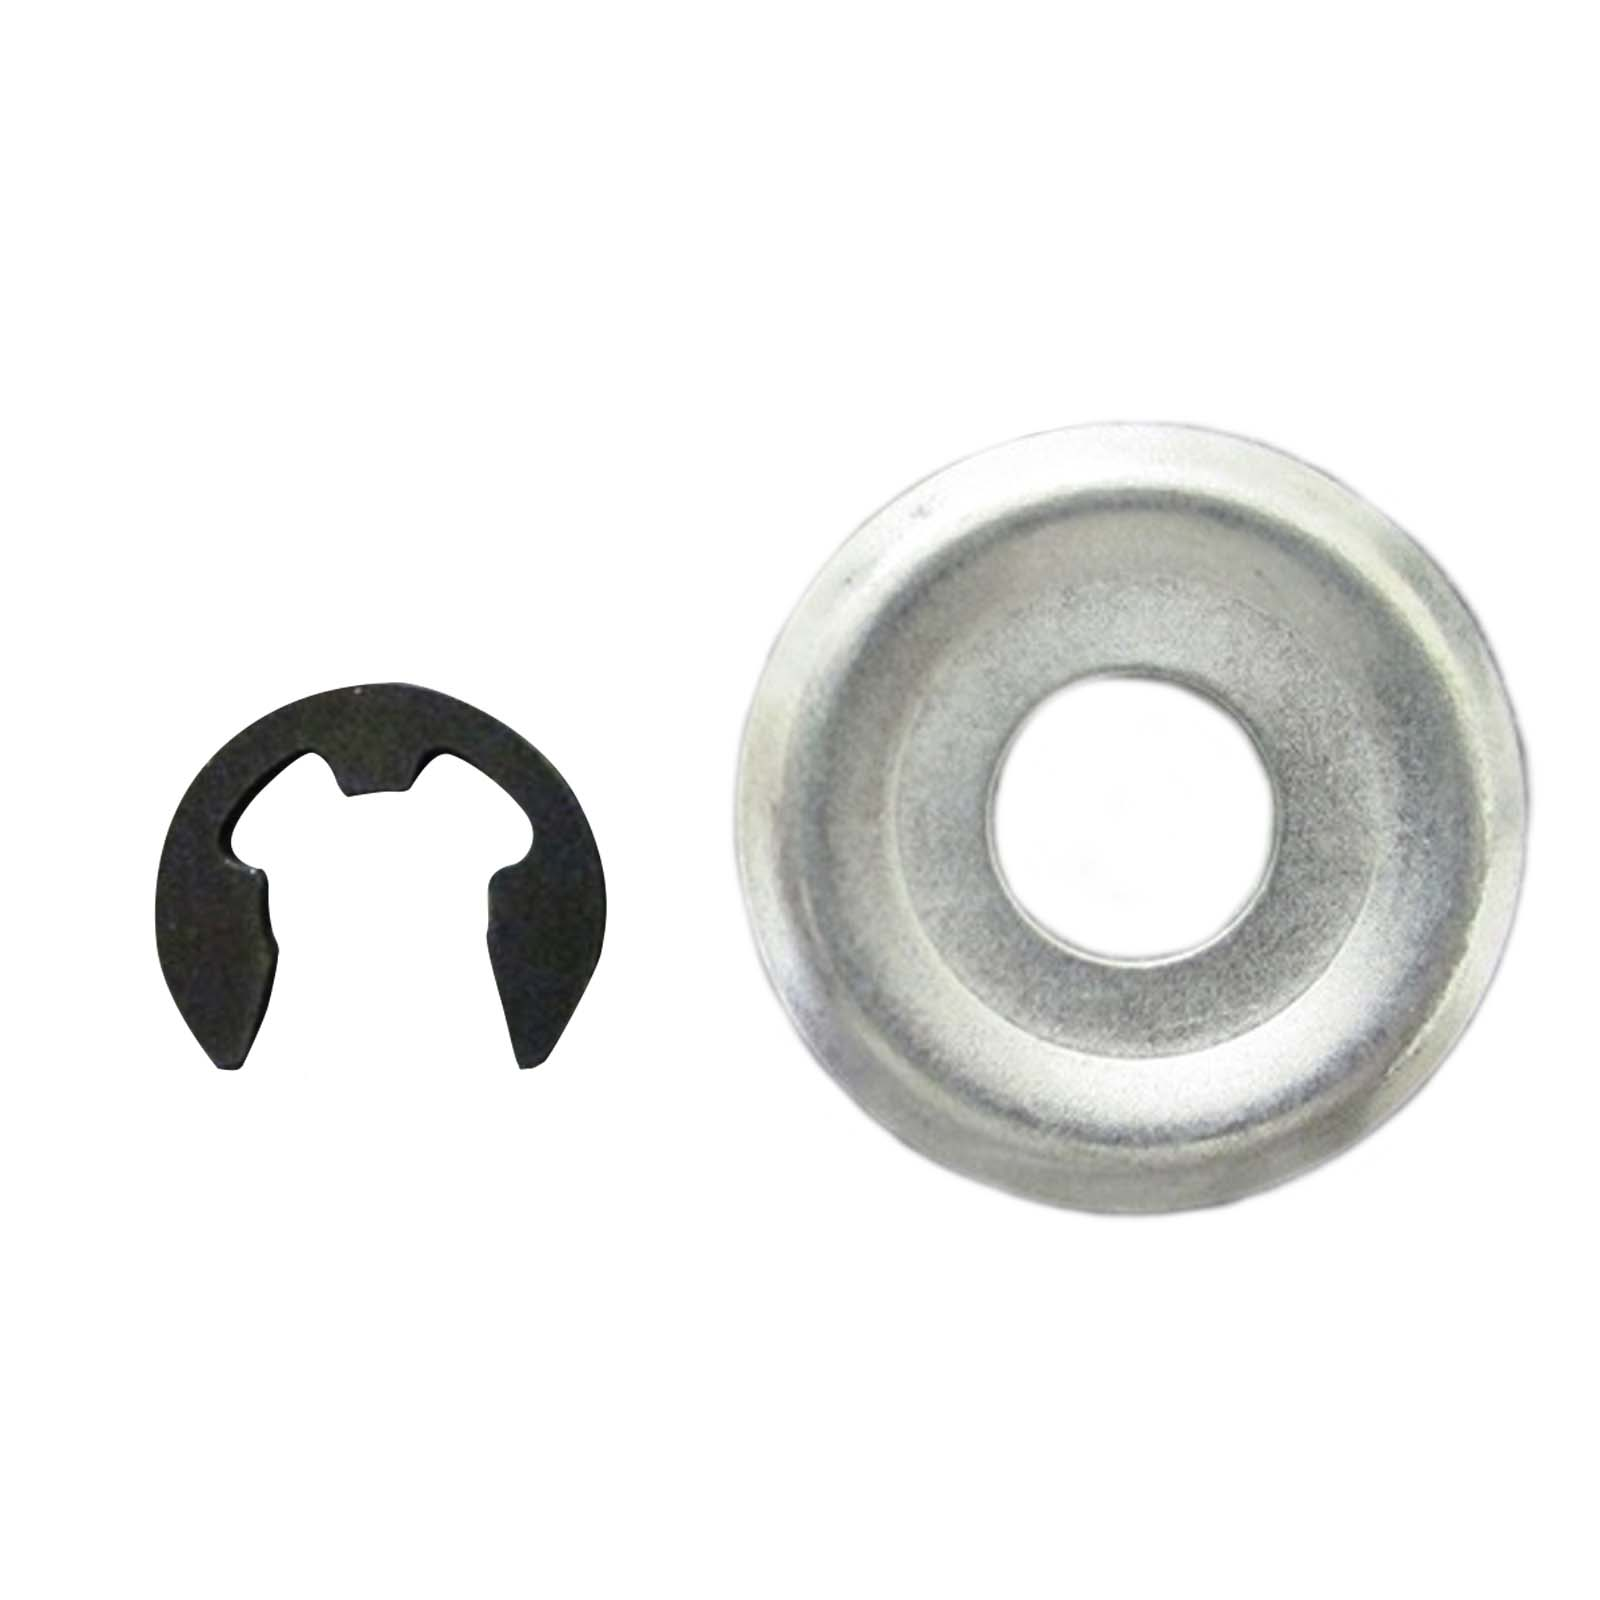 Sprocket E-Clip & Washer for Stihl 017 MS170 018 MS180 MS181 019 MS190 Chainsaw